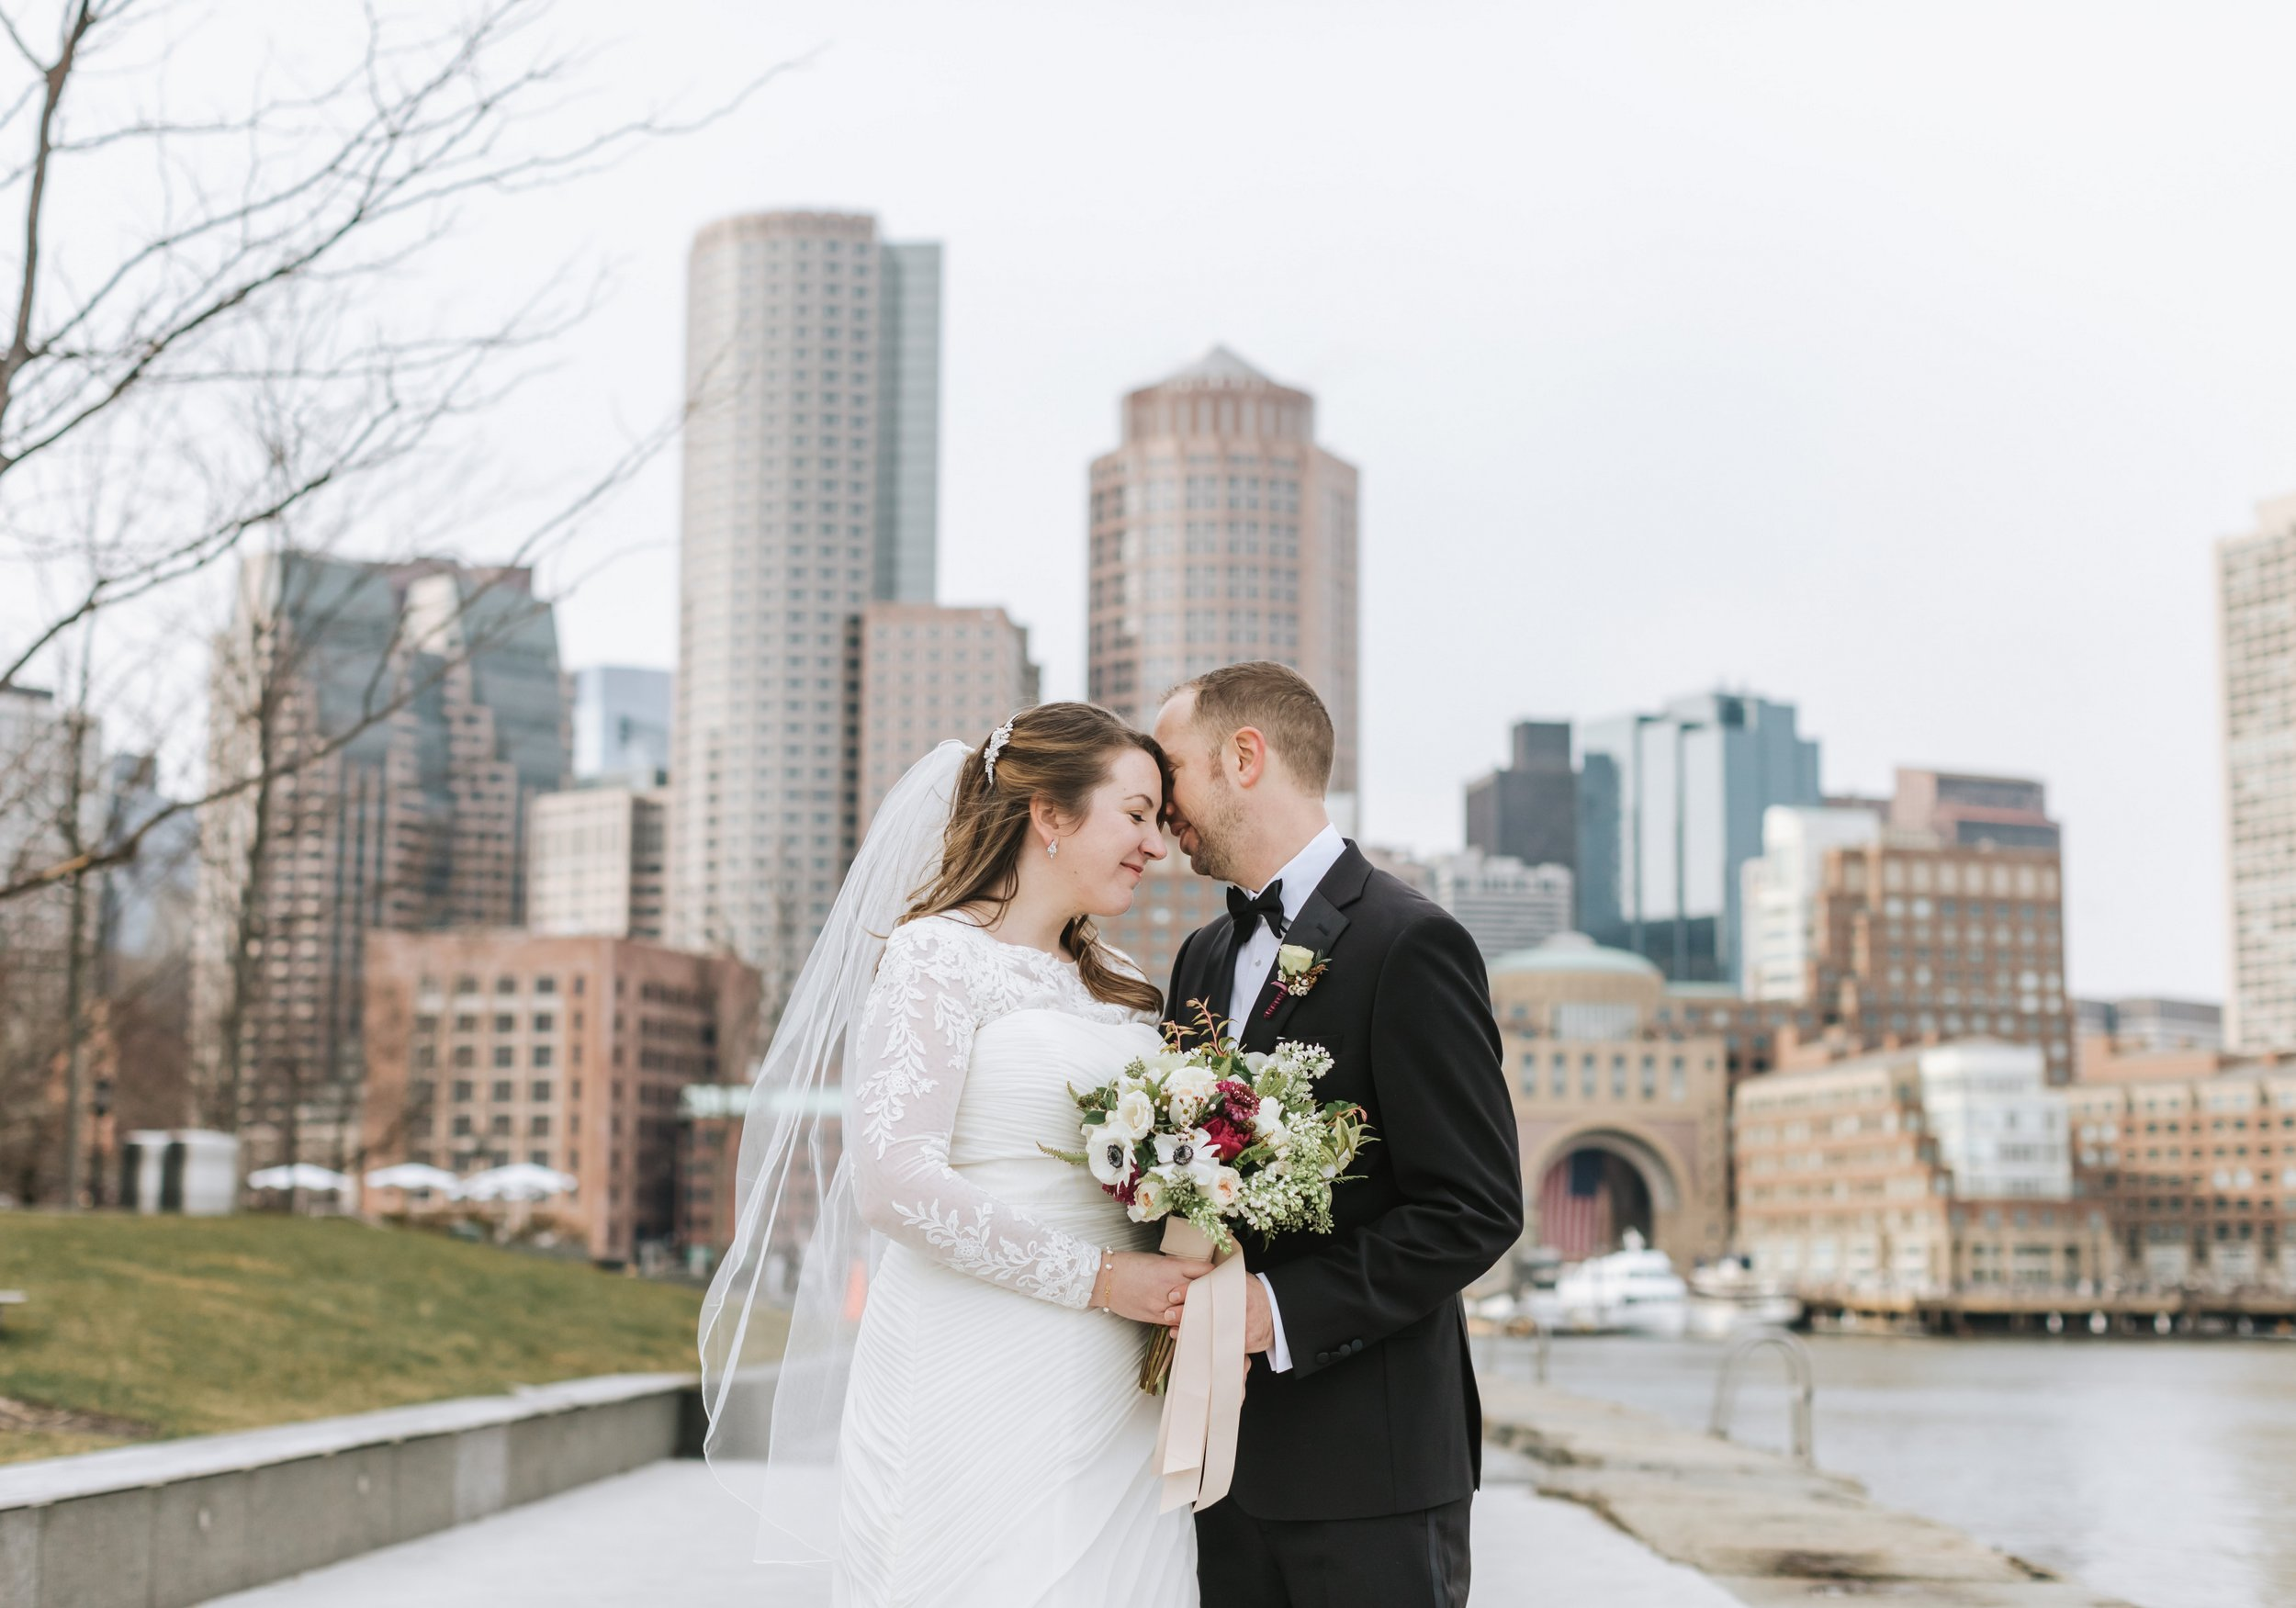 Seaport-Boston-City-Hall-Wedding-Elopement-Lena-Mirisola-2.JPG